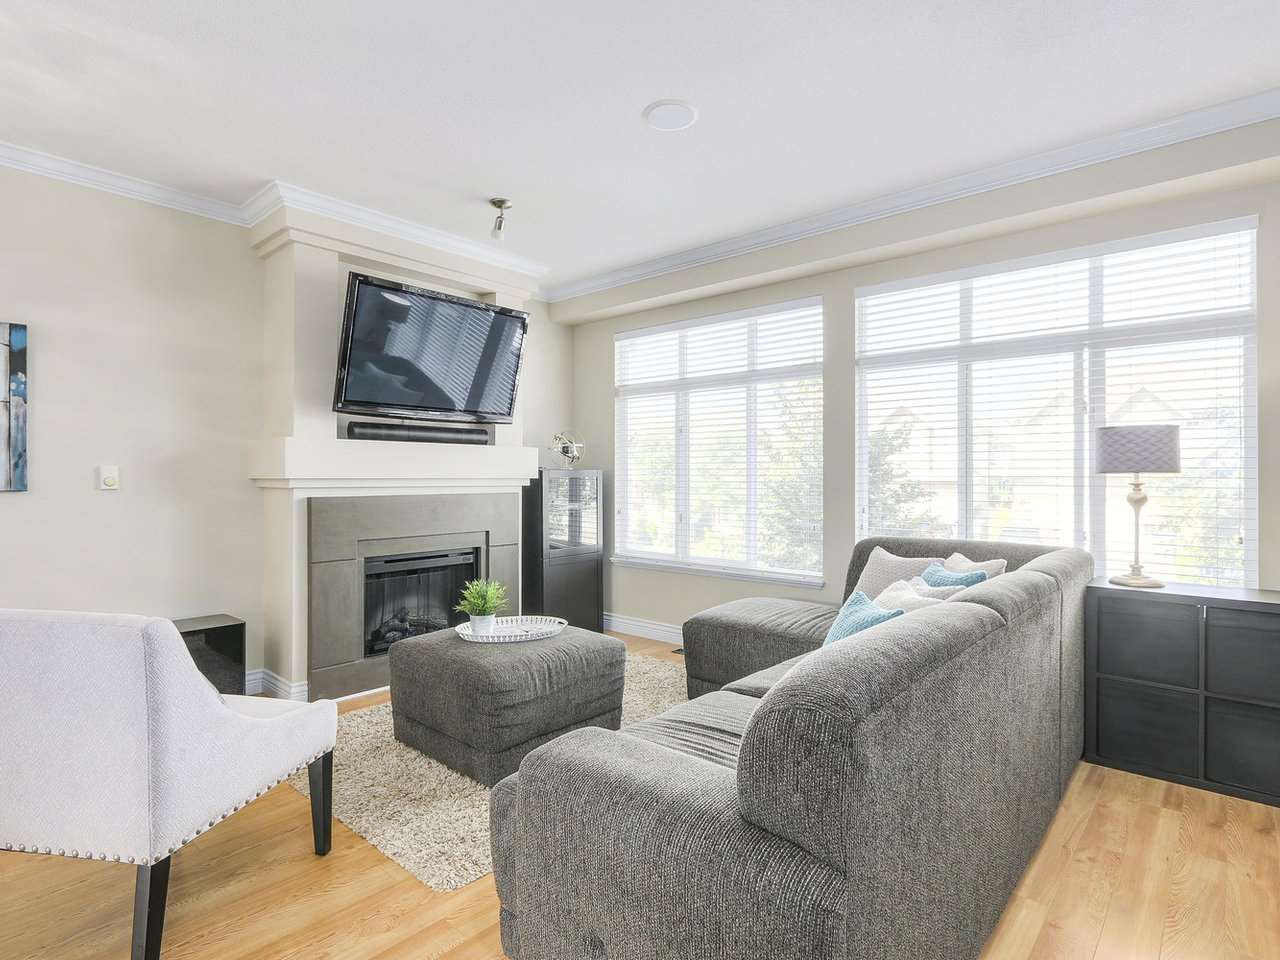 Photo 3: Photos: 43 19330 69 AVENUE in Surrey: Clayton Townhouse for sale (Cloverdale)  : MLS®# R2185704